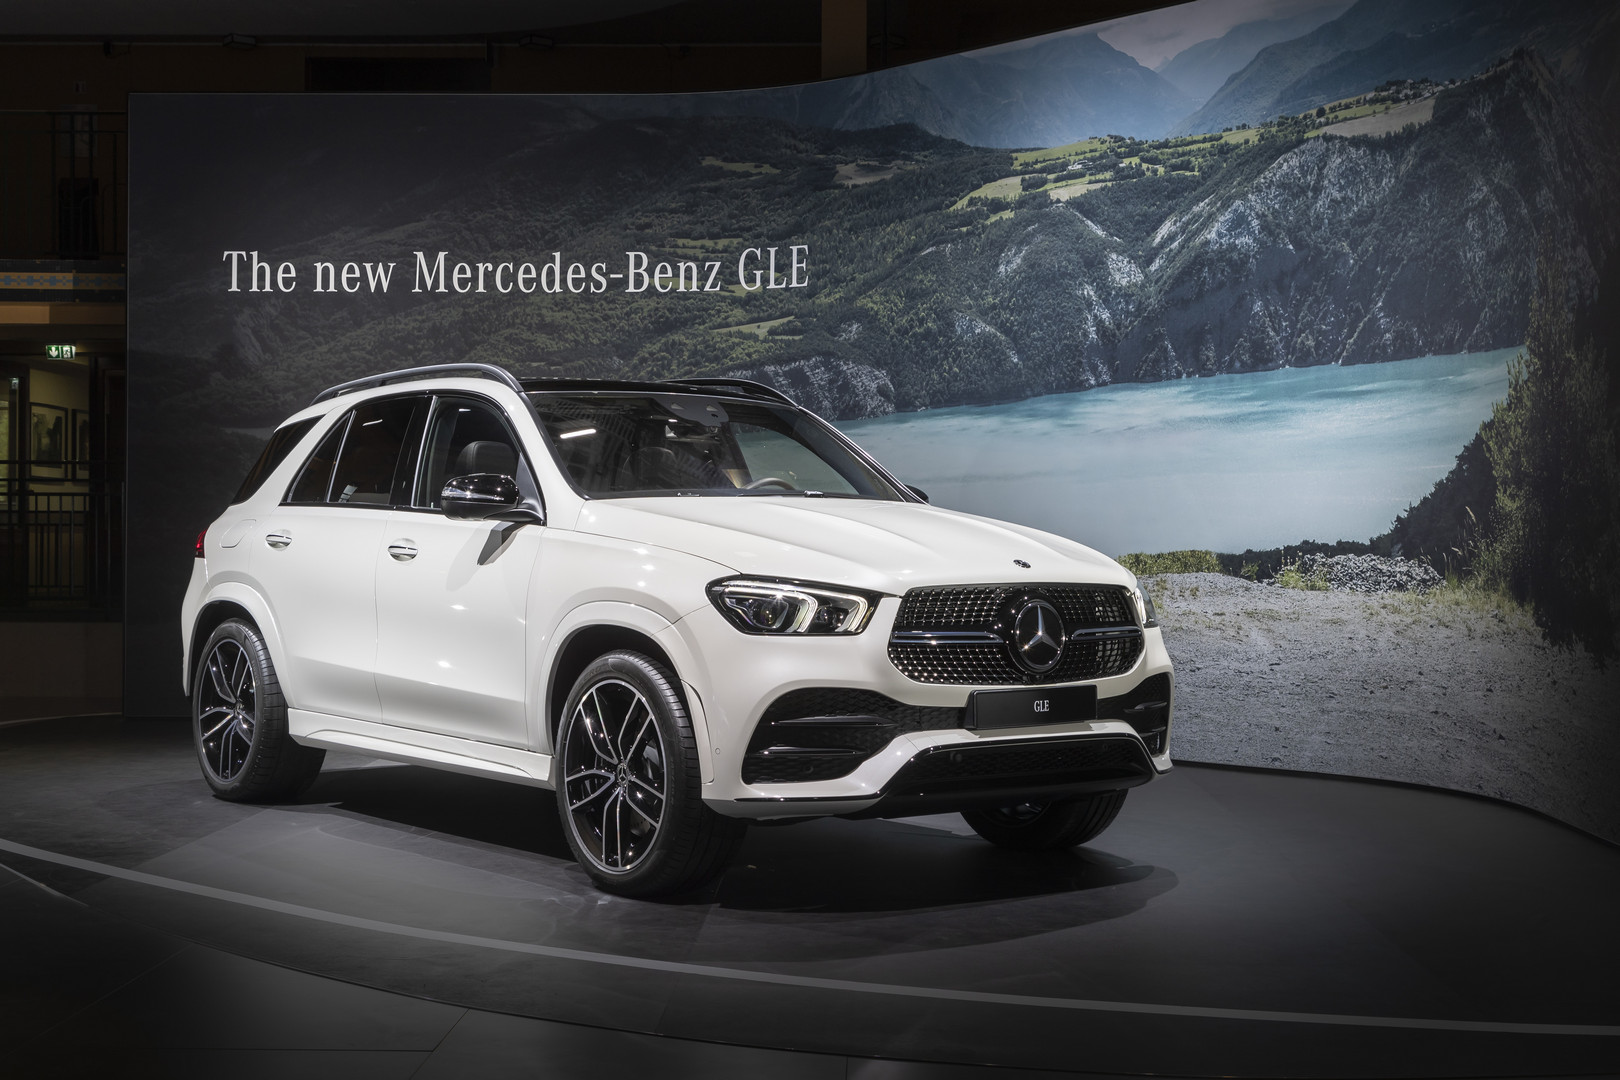 2019 Mercedes-Benz GLE 450 - Front View